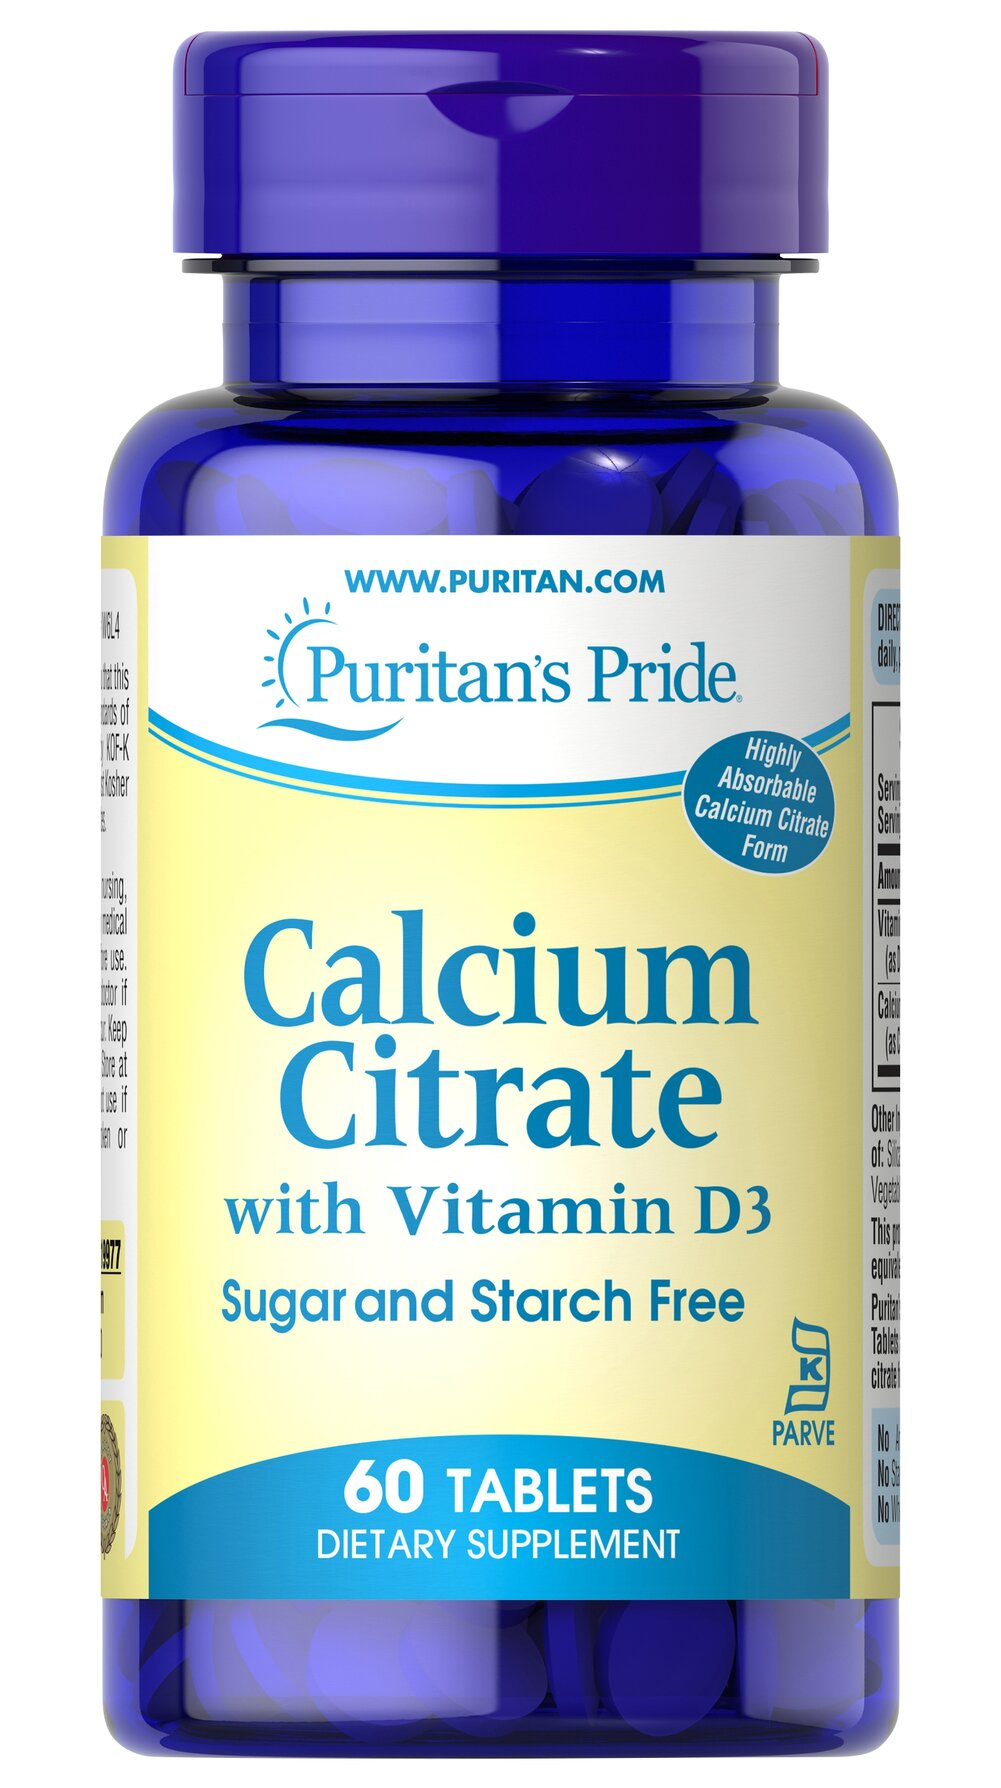 Calcium Citrate with Vitamin D Kosher <p>A Kosher/Vegetarian formulation of Calcium Citrate with Vitamin D – a potent combination for bone health and more!**</p><p>Made from Calcium Citrate – a highly absorbable form of this essential mineral</p><p>Calcium and Vitamin D work together to support bone and teeth health**</p><p>Promotes immune system health**</p><p>Prepared under KOF-K Kosher Supervision</p> 60 Tablets 1000 mg/600 IU $11.06